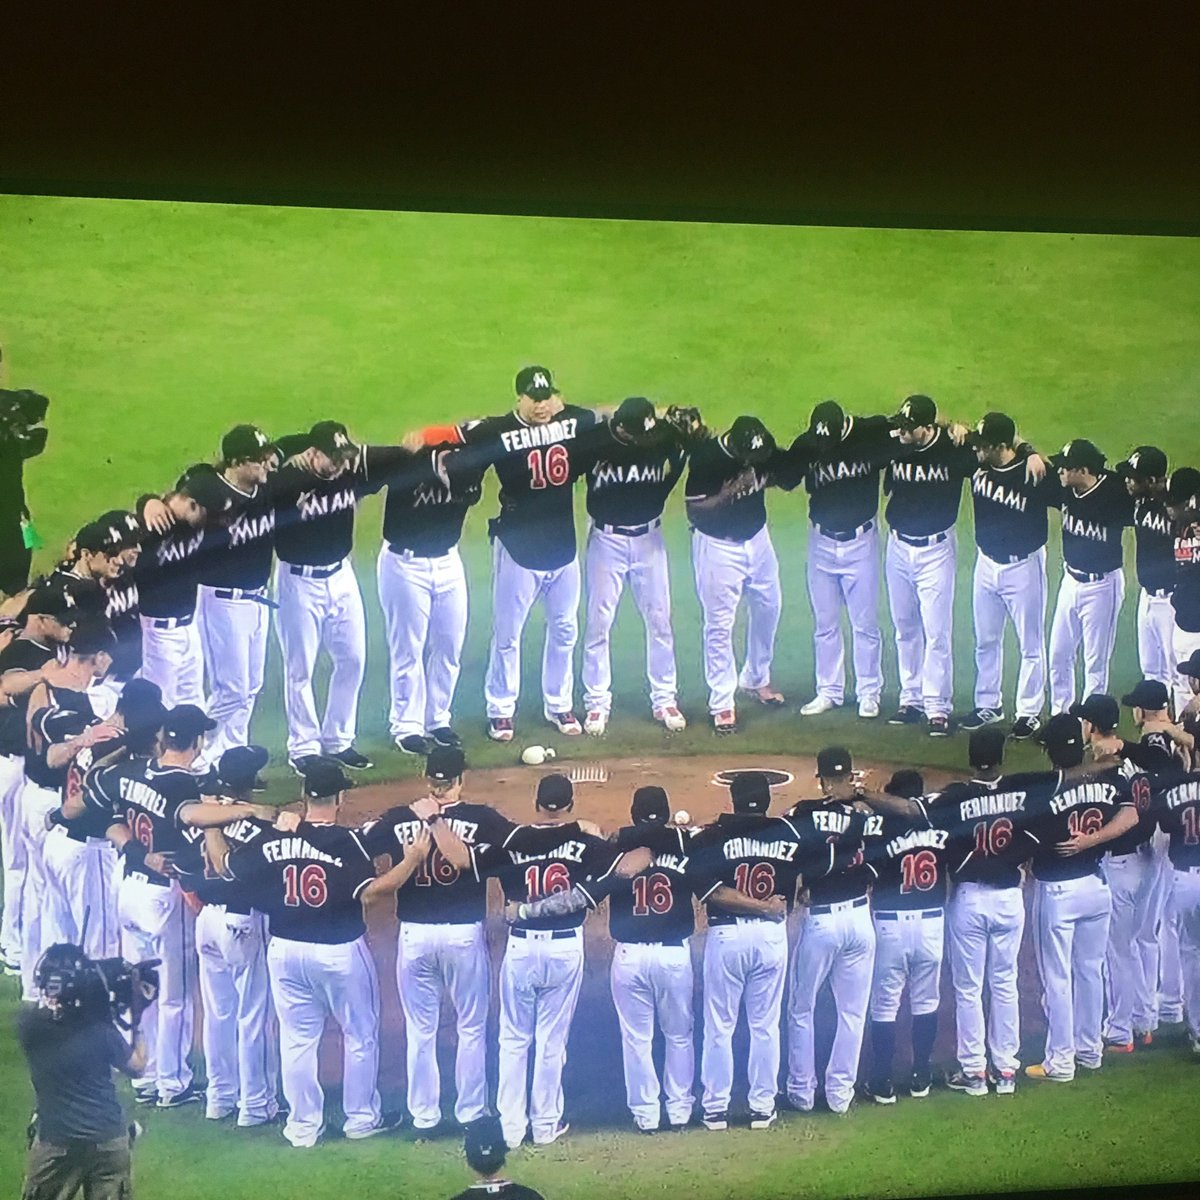 Image of the year for the #Marlins who gather around mound after winning 1st game since death of #JoseFernandez https://t.co/wbCpl5CQX5